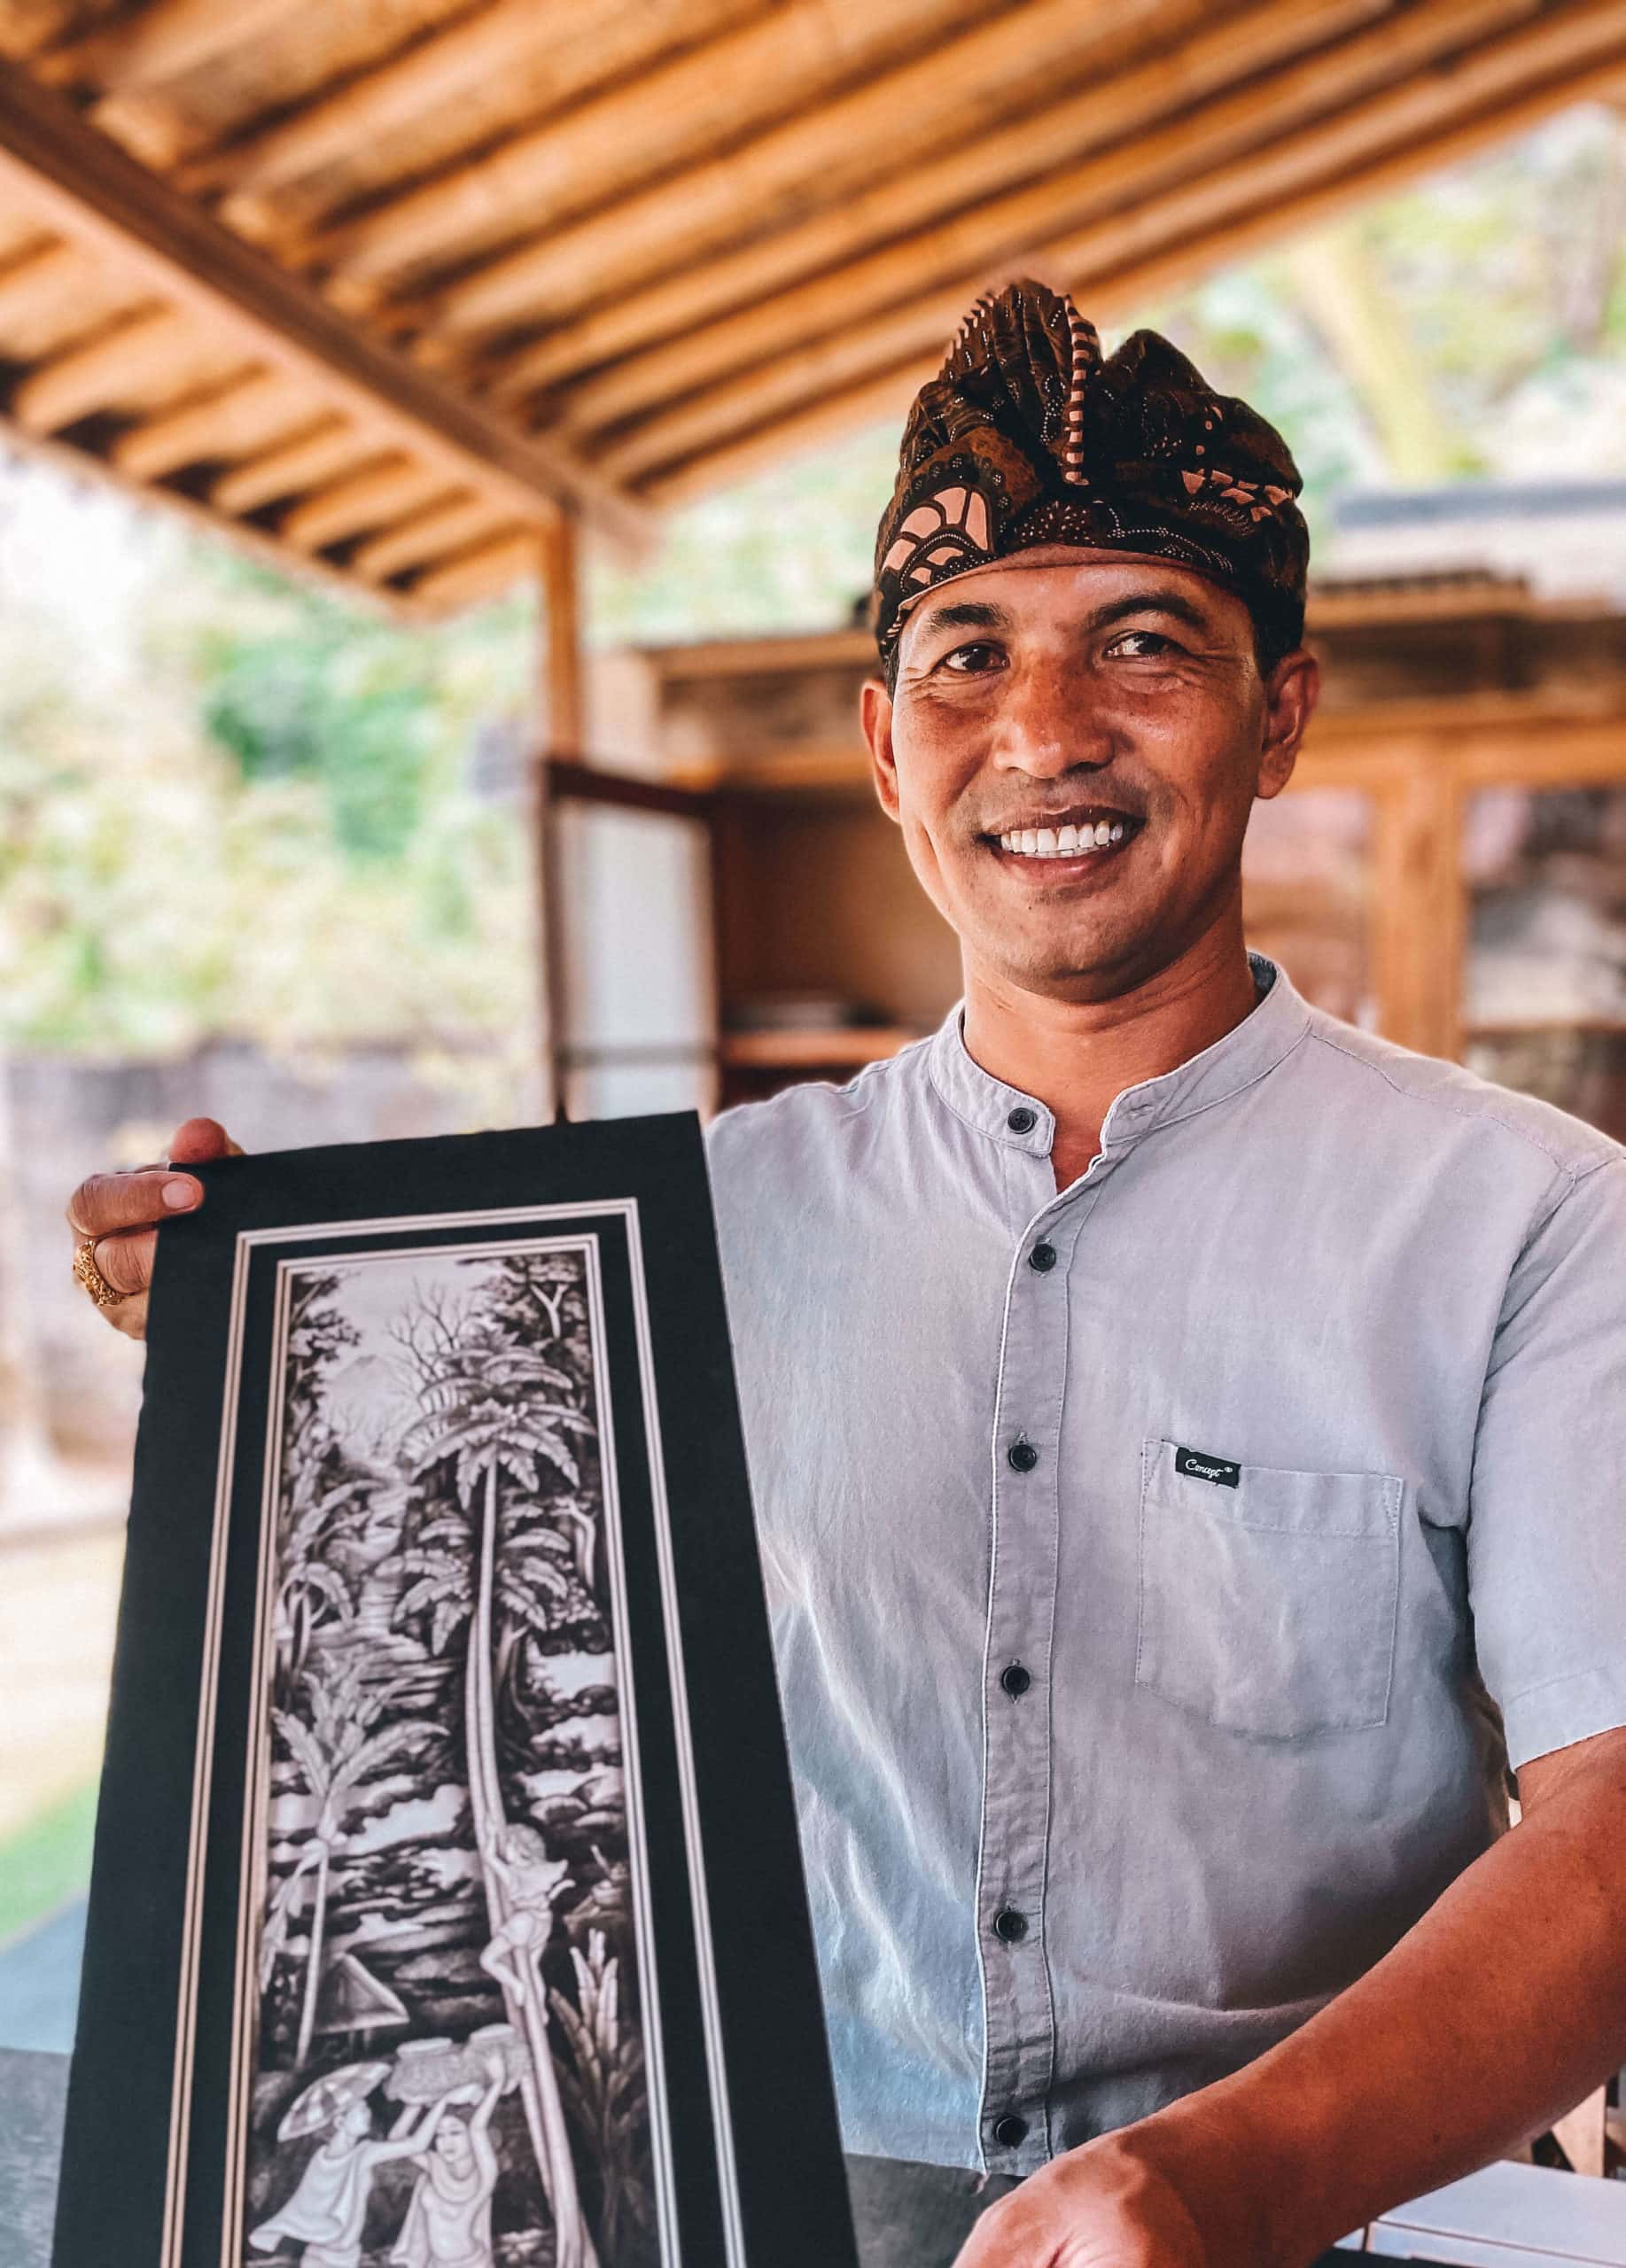 Tour guide in Bali